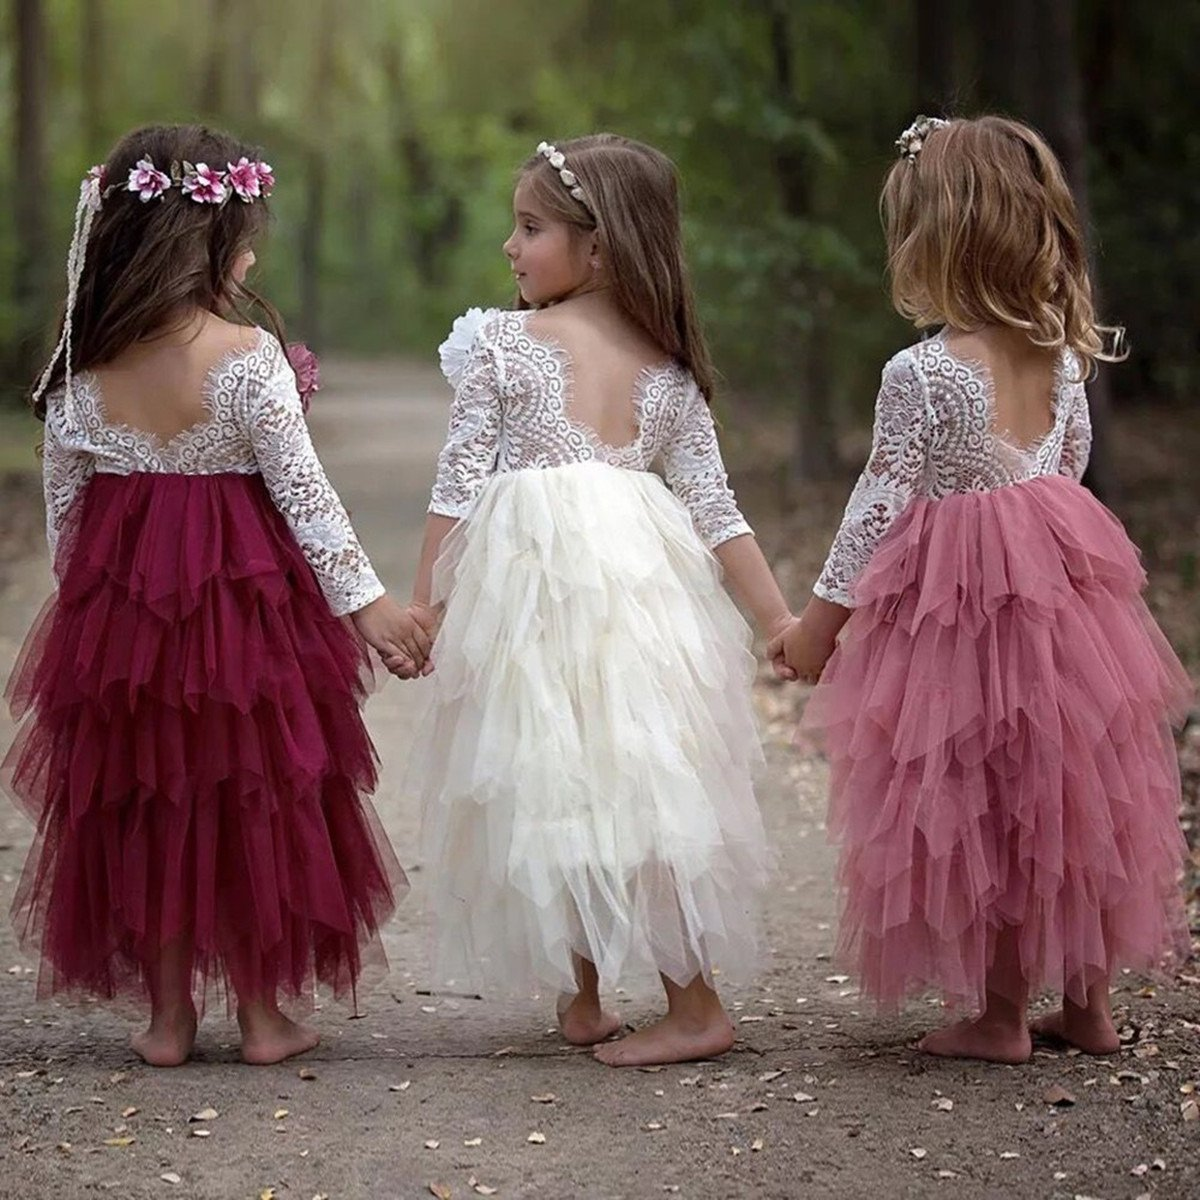 Little Girls Lace Backless Dress Baby Flower Girl Princess Lace Back Tutu A-line Party Dresses (Pink Long Dress, 2-3Years) by Titanos (Image #3)